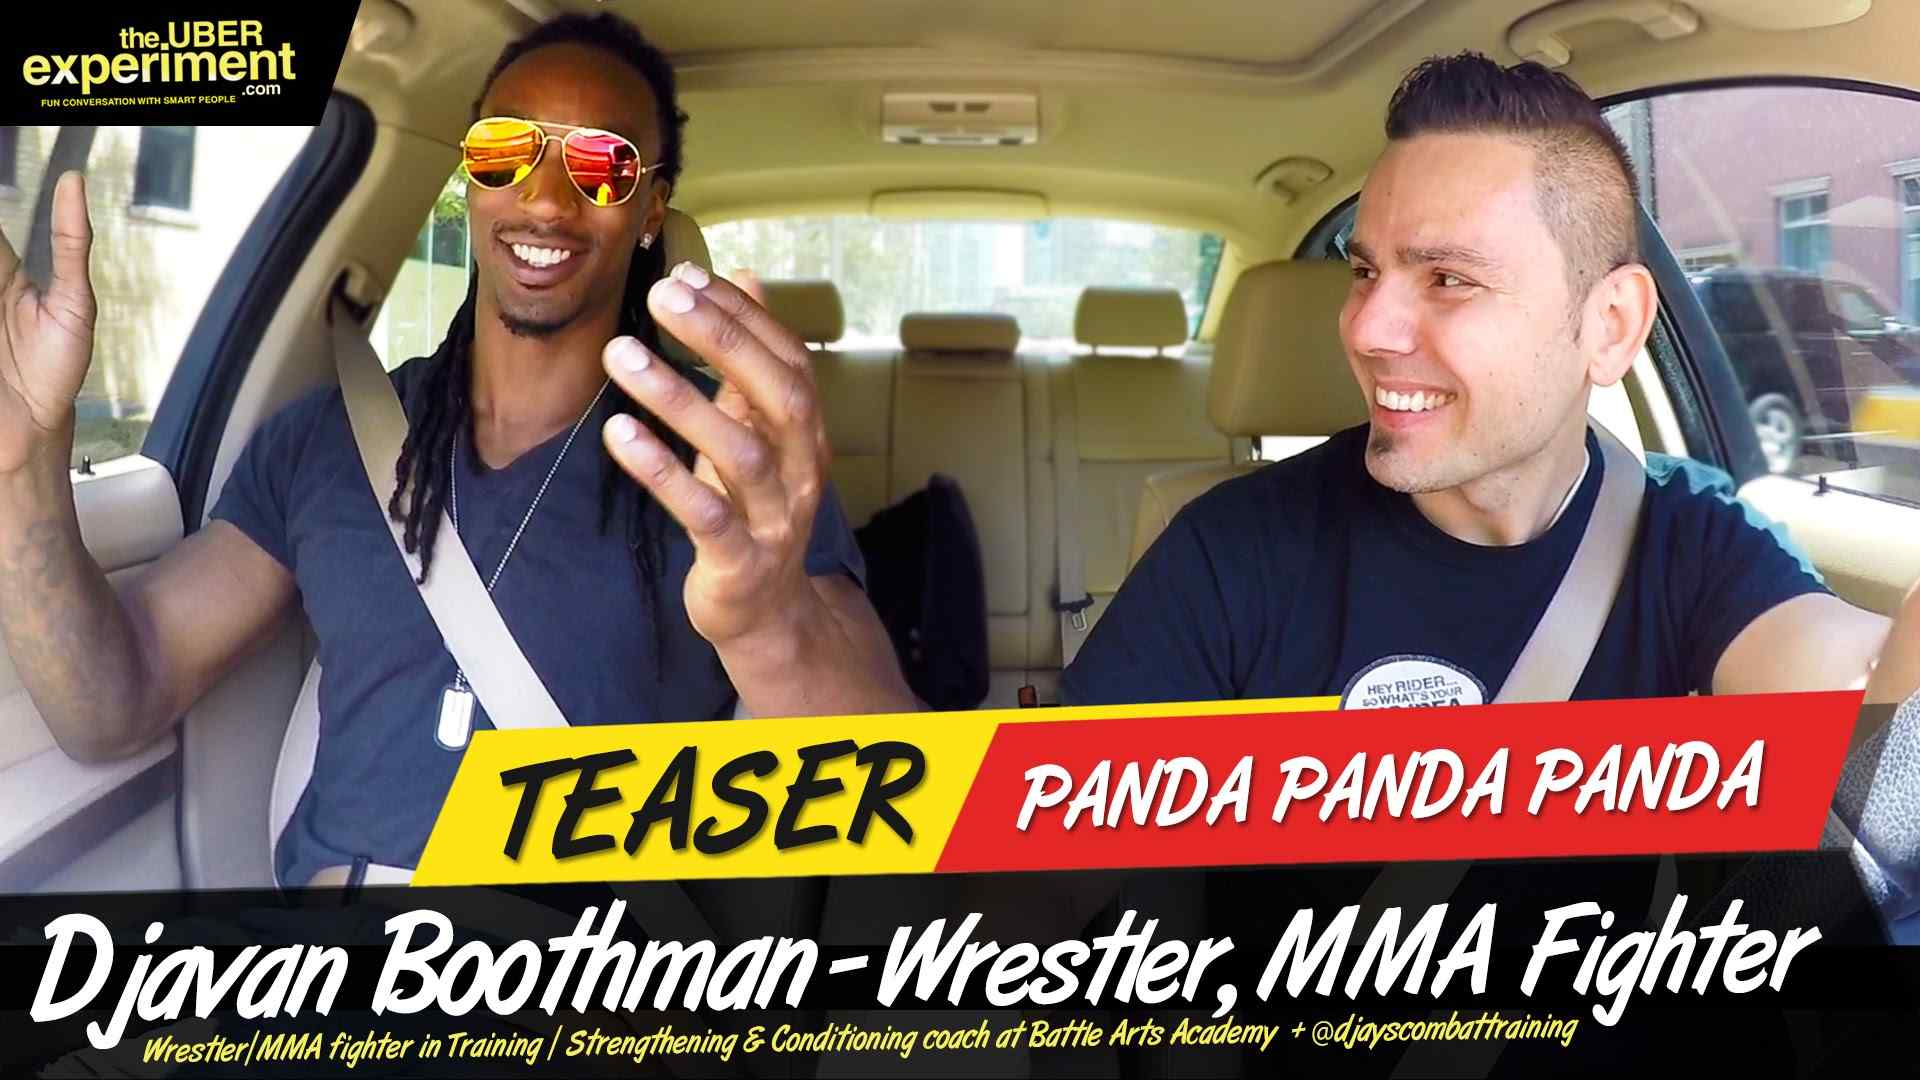 PANDA PANDA PANDA - Wrestler, MMA Fighter DJAY BOOTHMAN Rides The UBER Experiment Reality Talk Show